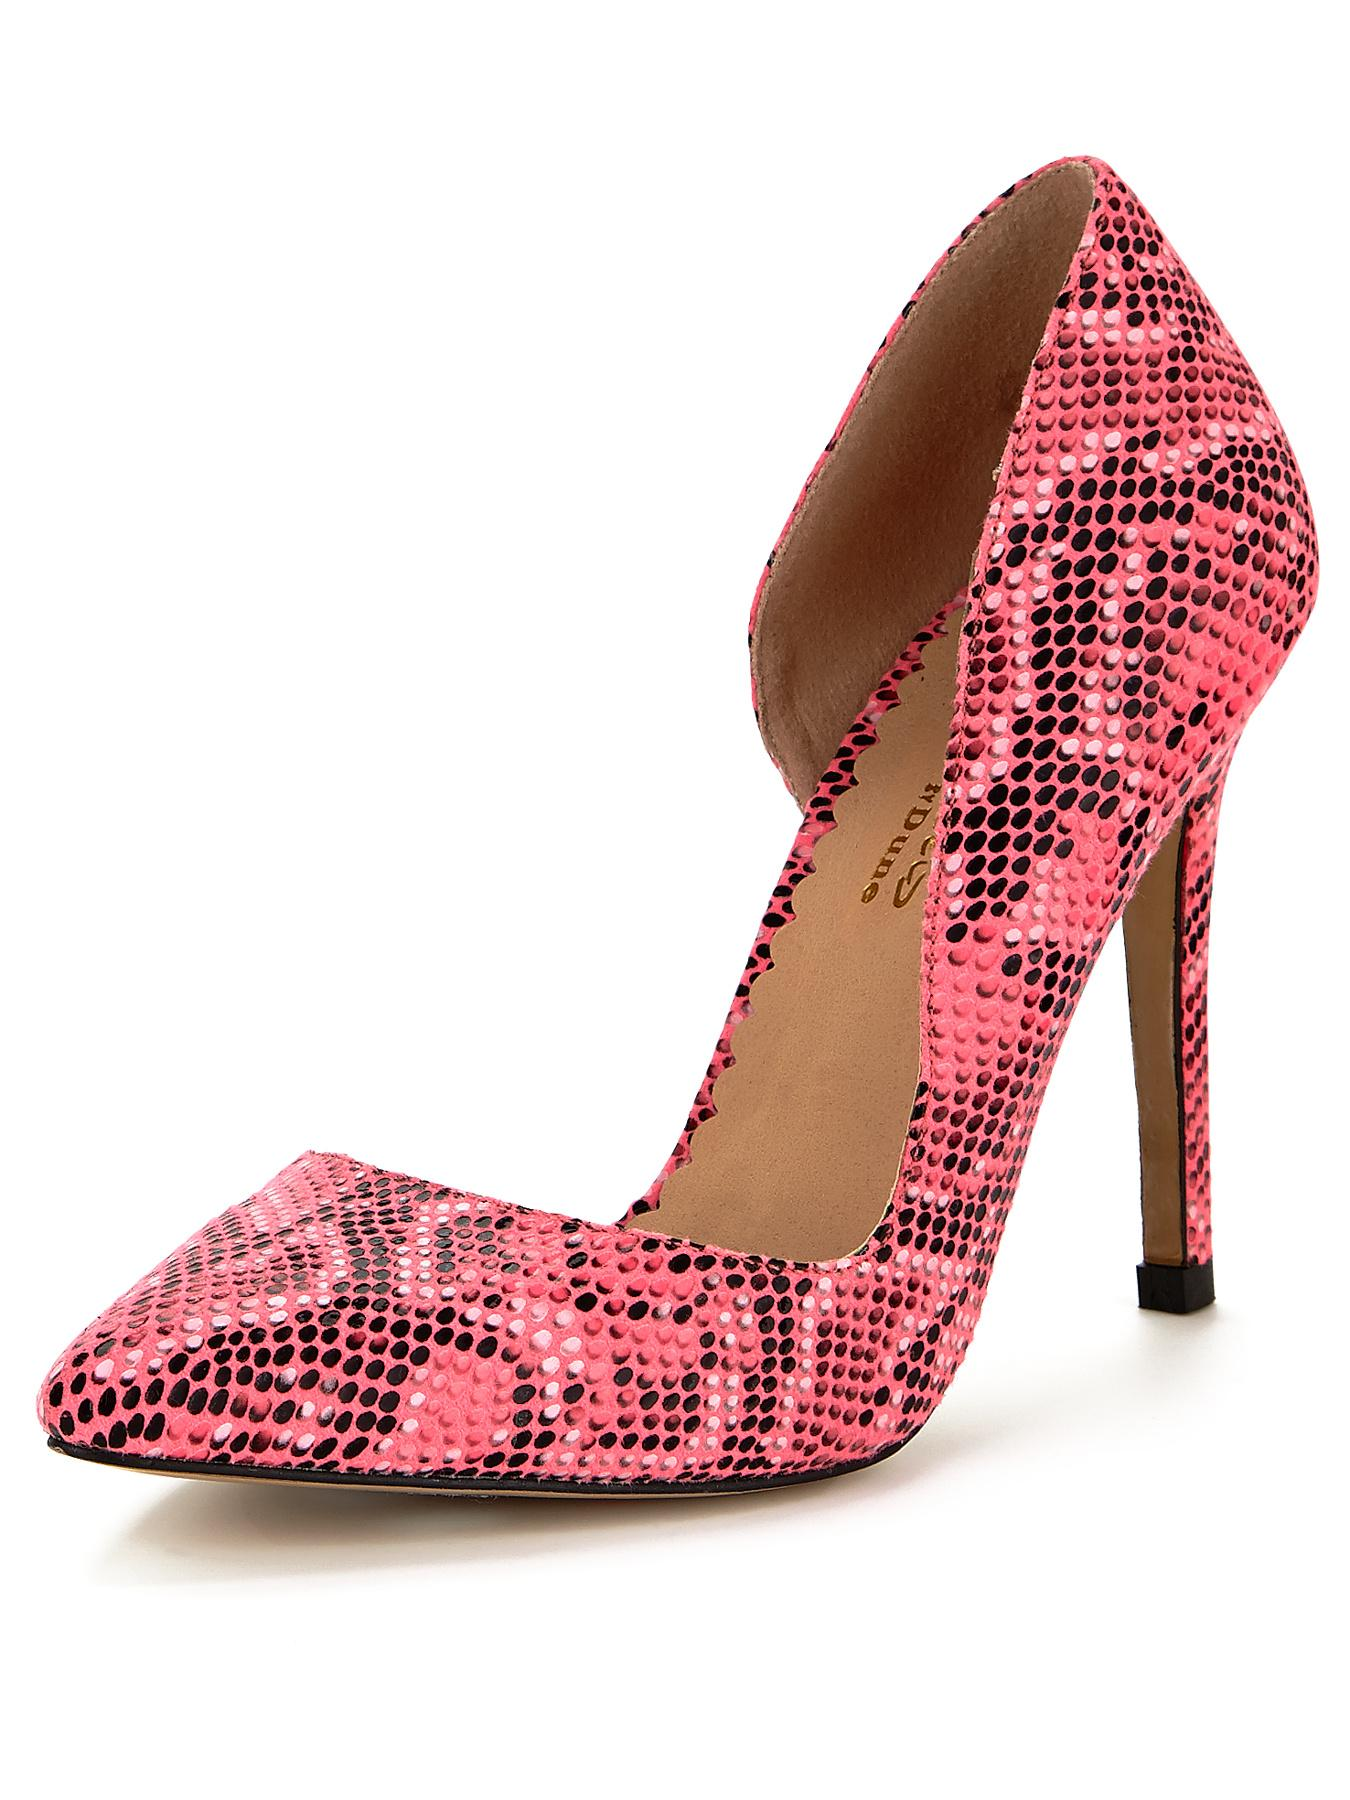 Head Over Heels Clarris Snake Print Pointed Court Shoes - Pink, Pink